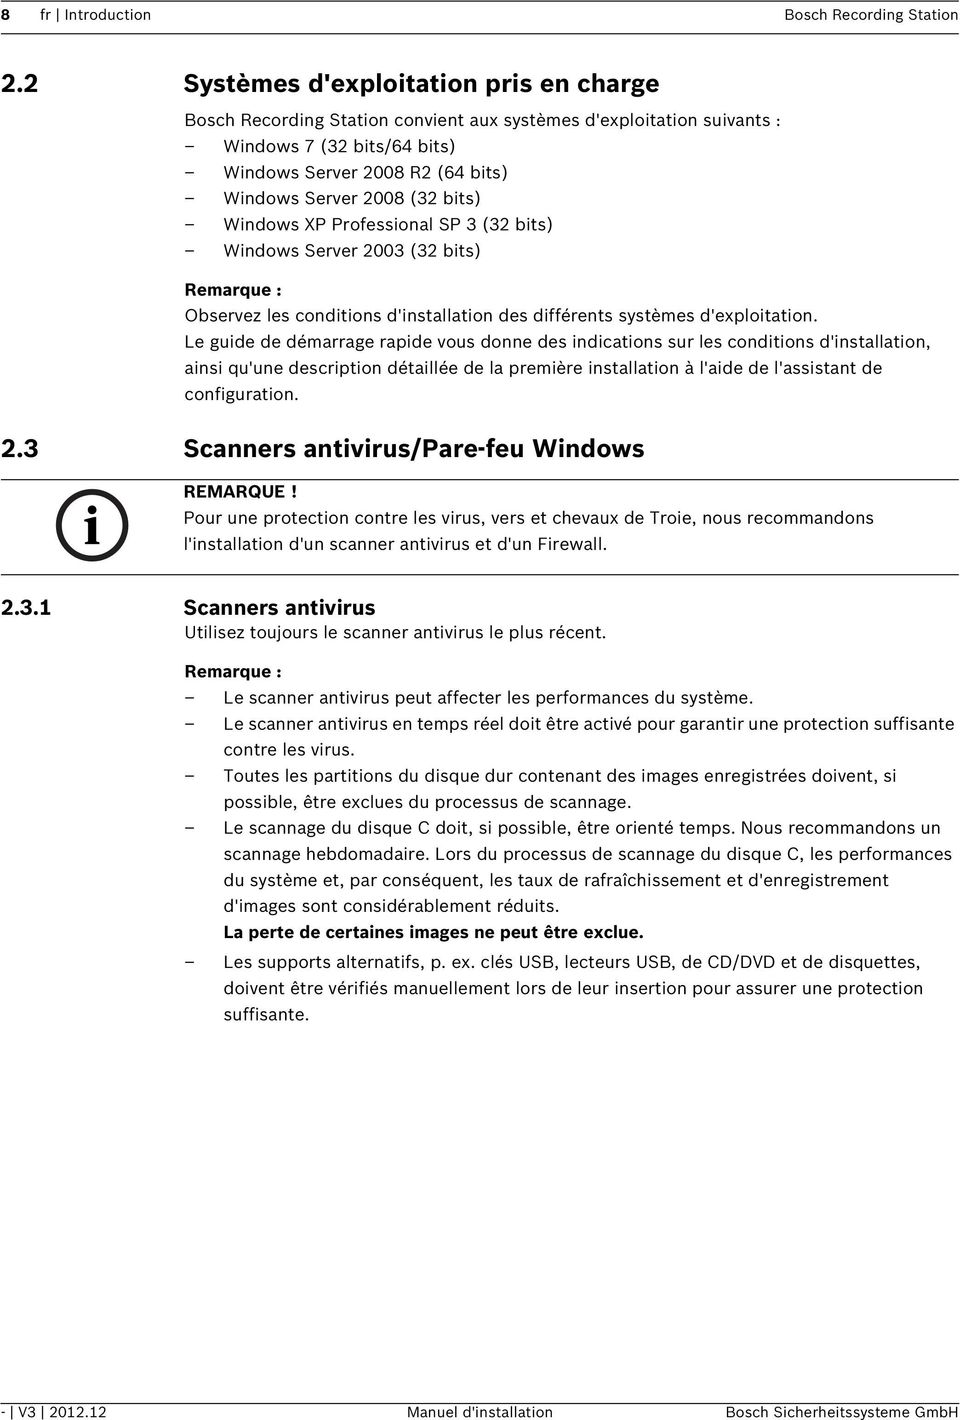 bits) Windows XP Professional SP 3 (32 bits) Windows Server 2003 (32 bits) Observez les conditions d'installation des différents systèmes d'exploitation.